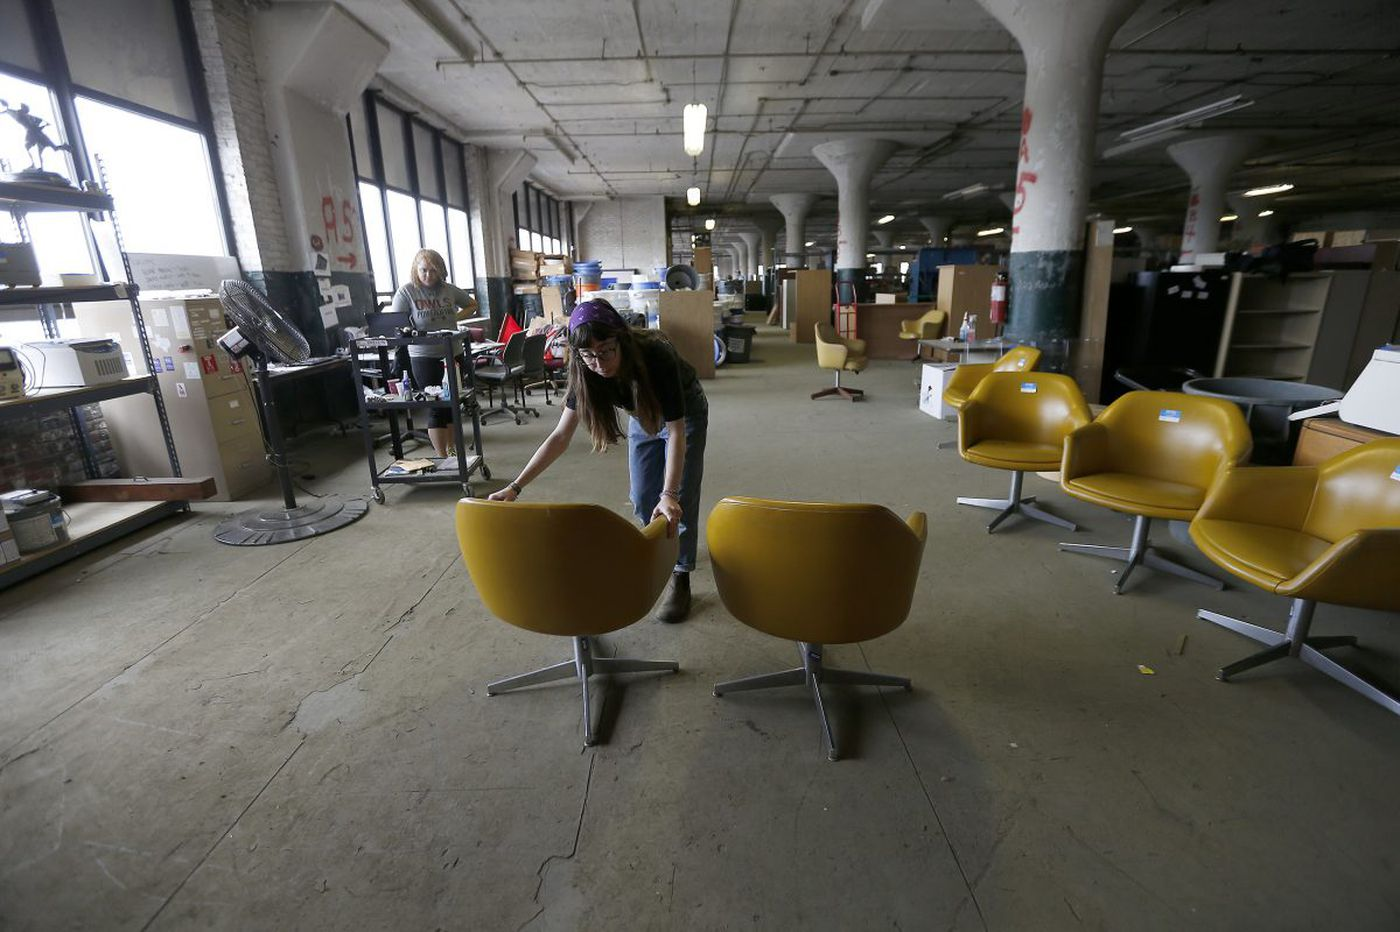 For sale, cheap: Colleges' furniture, cars, pizza ovens